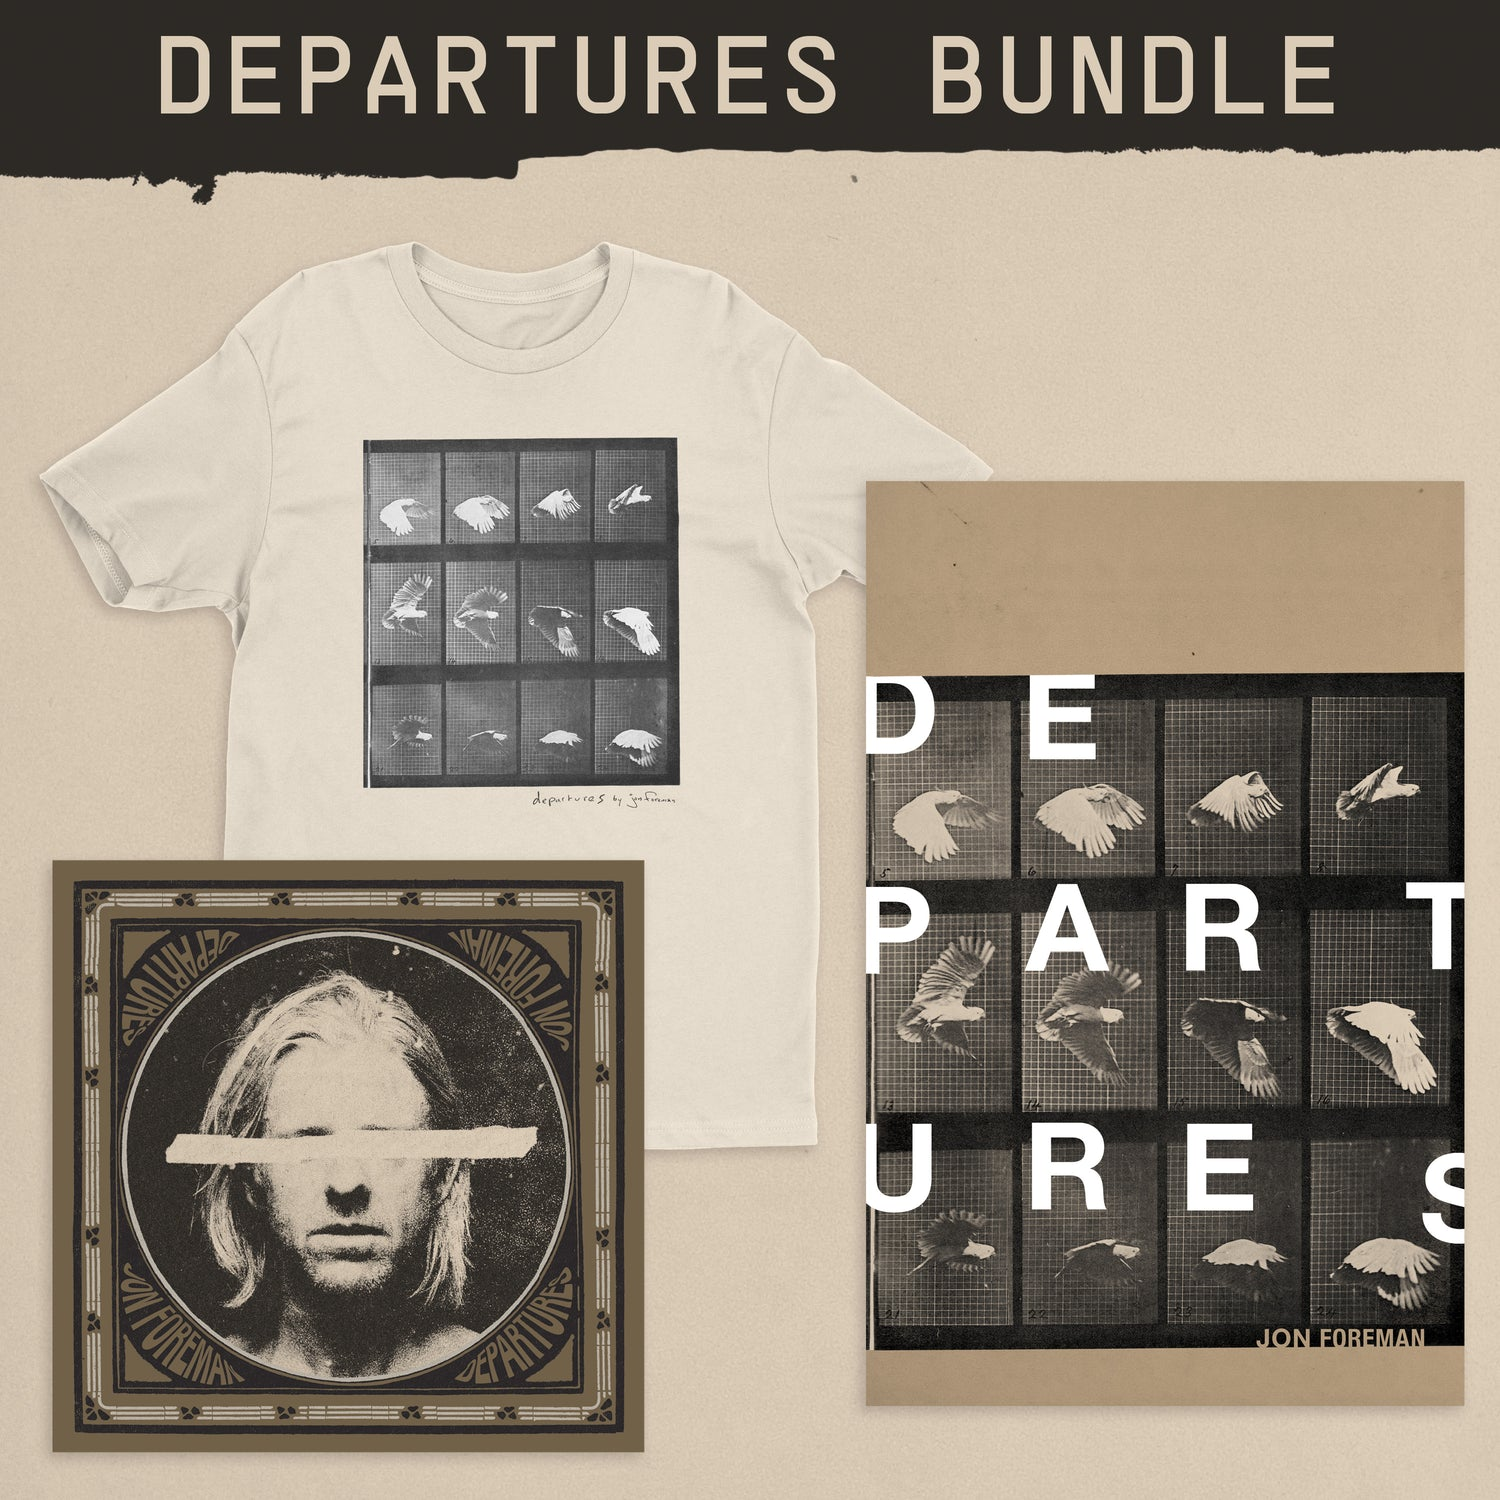 Departures Bundle